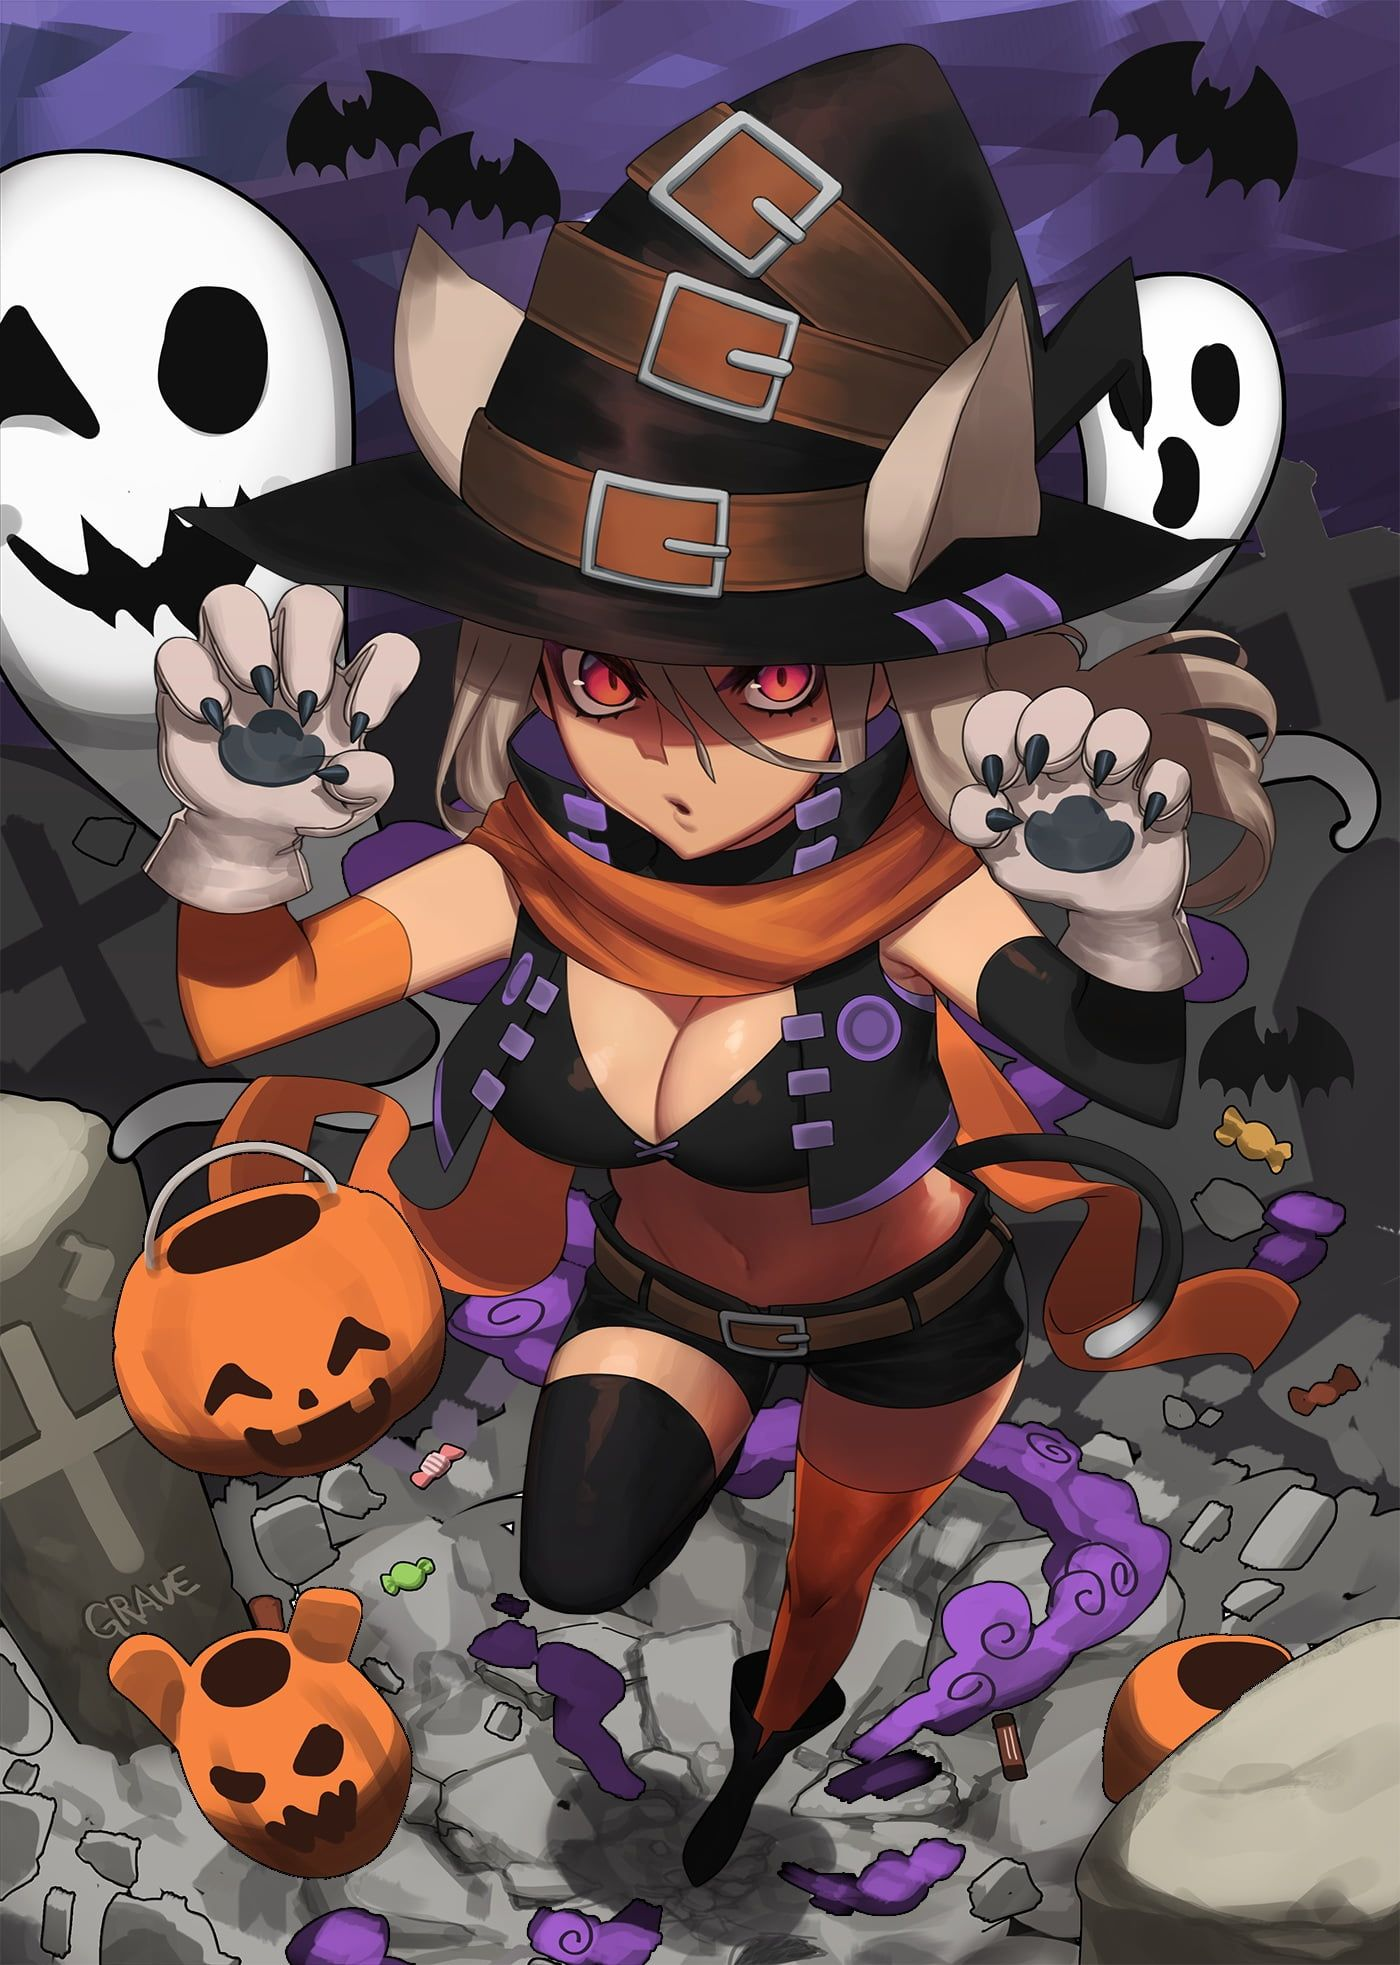 Pin by Kevin May on Pumpkin | Anime halloween, Anime